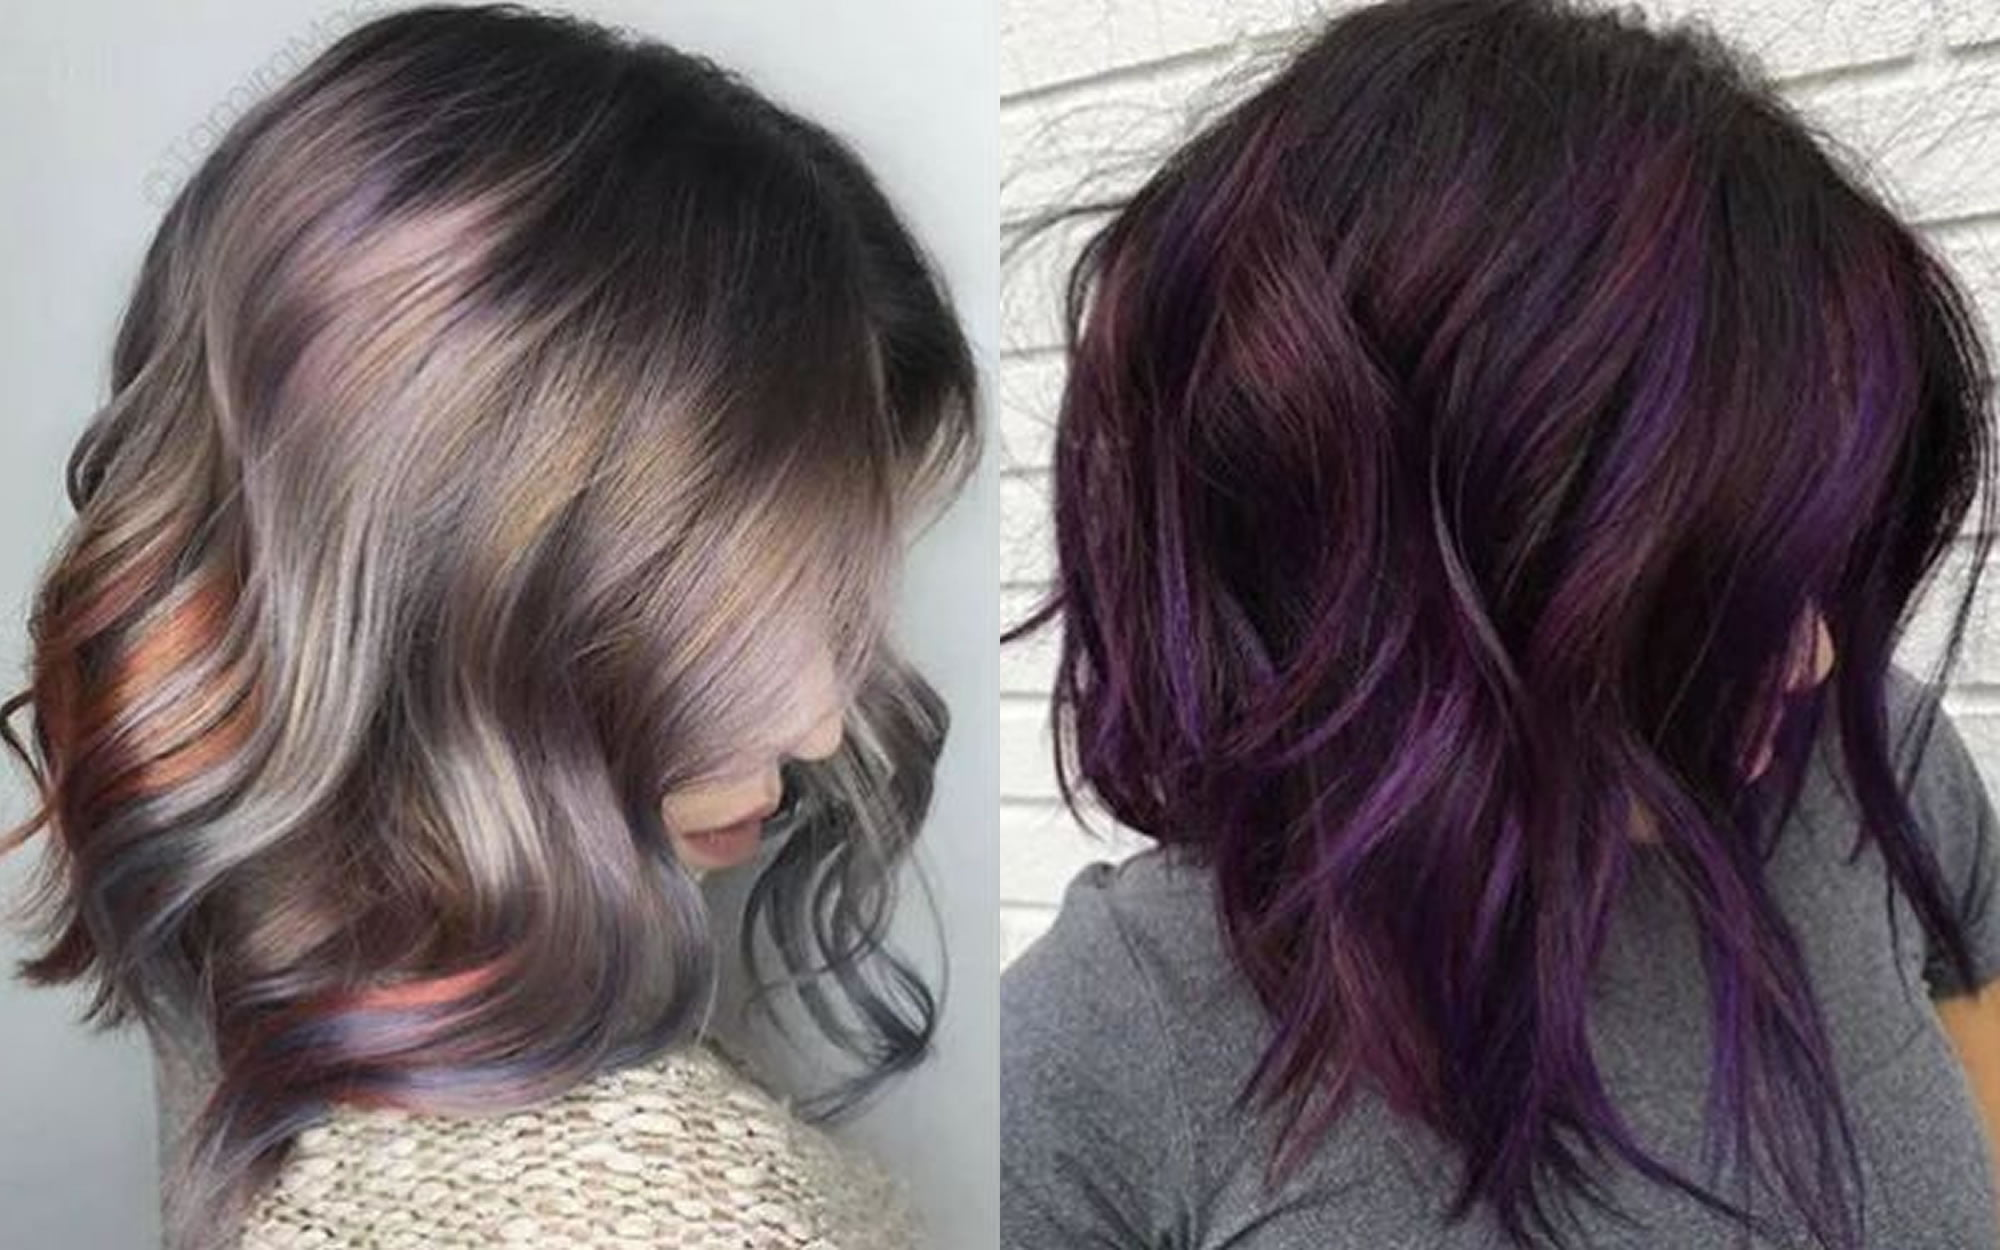 2019 Hairstyles And Colors: The Best 50 Balayage Bob Hairstyles (Short+Long